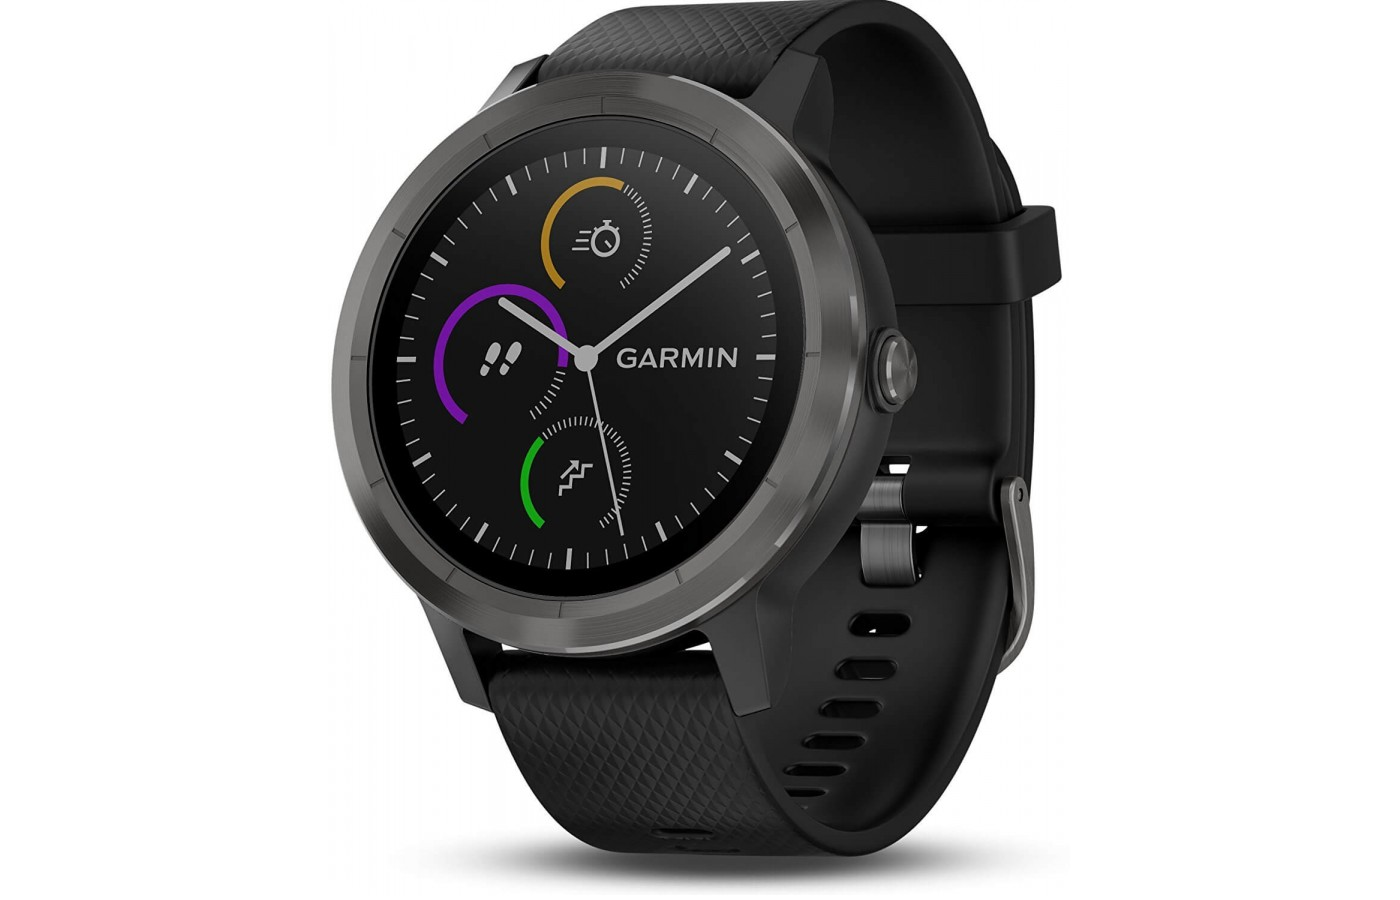 The Garmin Vivoactive 3 features Move IQ